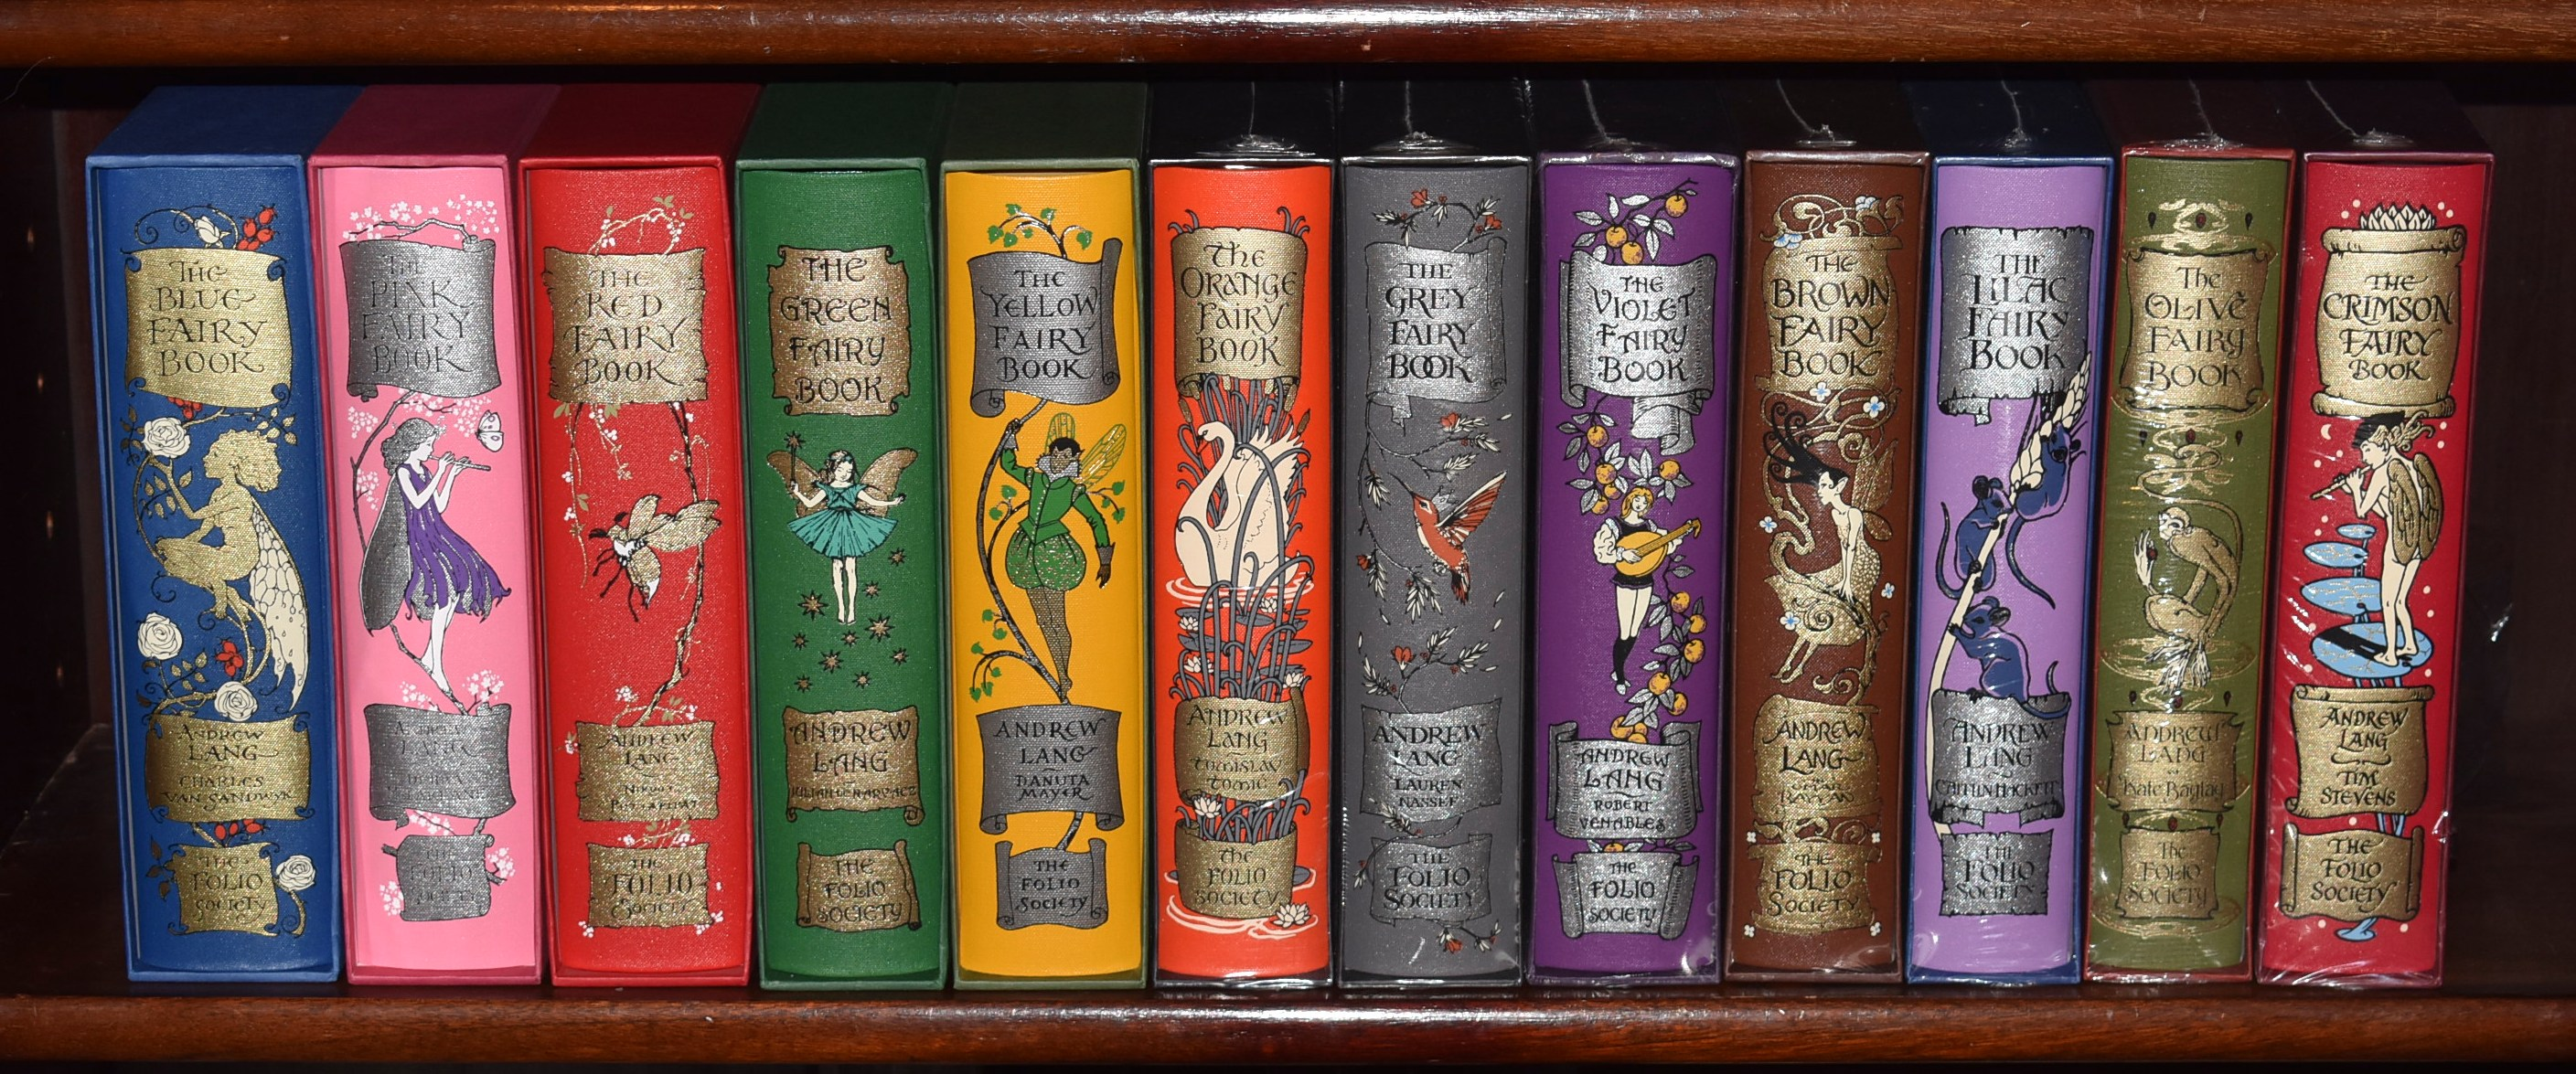 Image for The Complete RAINBOW FAIRY BOOKS 12 Volumes.